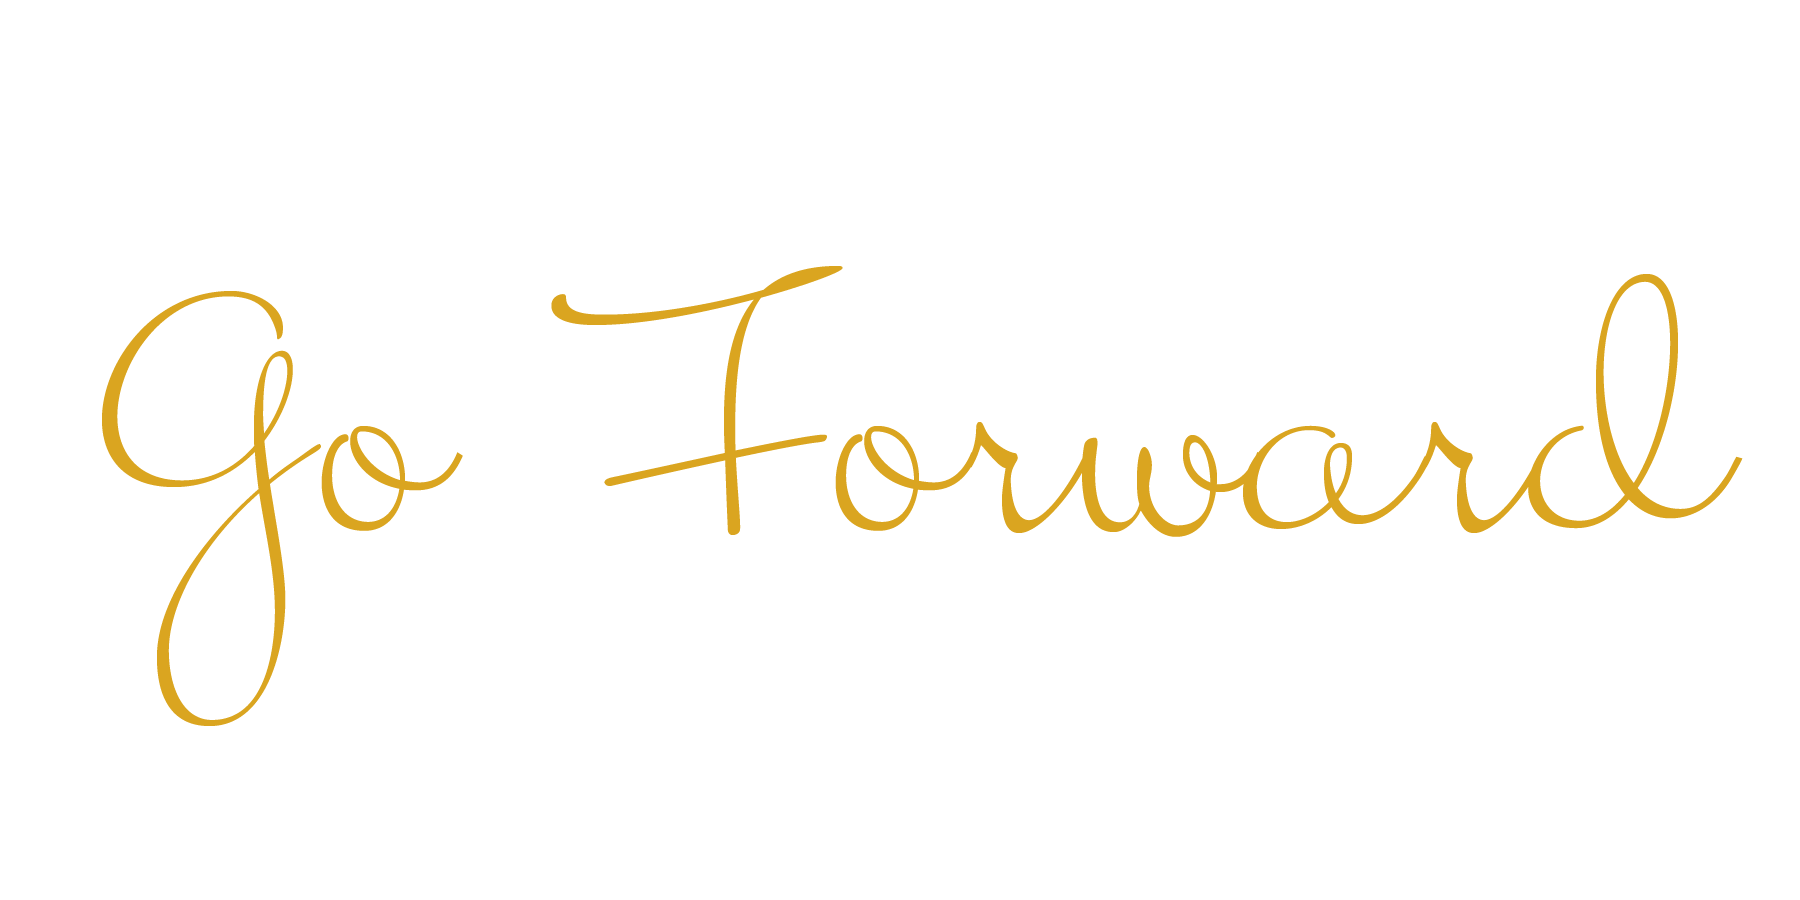 Go Forward.png